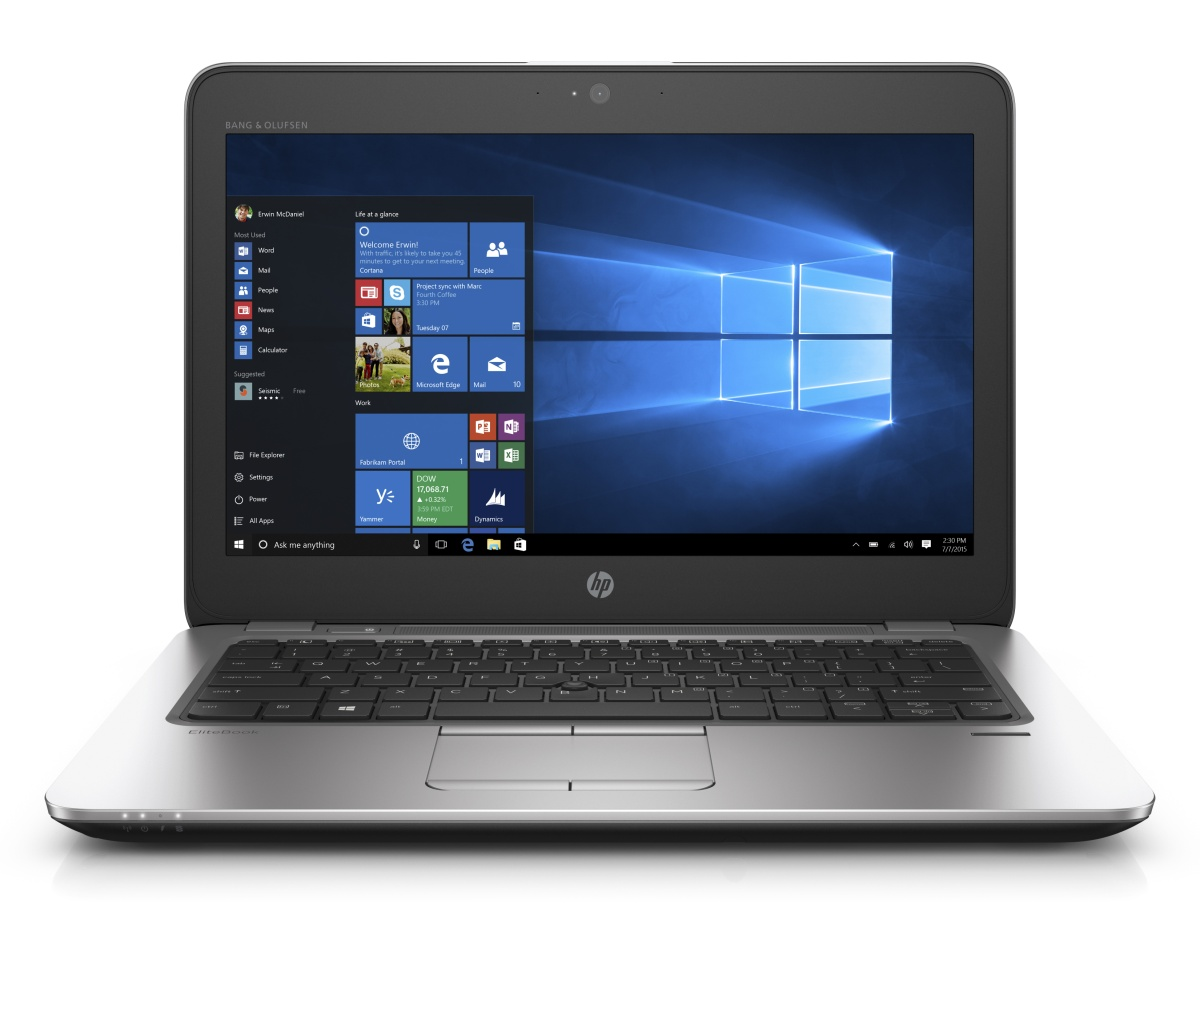 "HP EliteBook 820 G3 12.5"" HD /i5-6200U/4GB/500GB/WIFI/BT/MCR/FPR/3RSer"